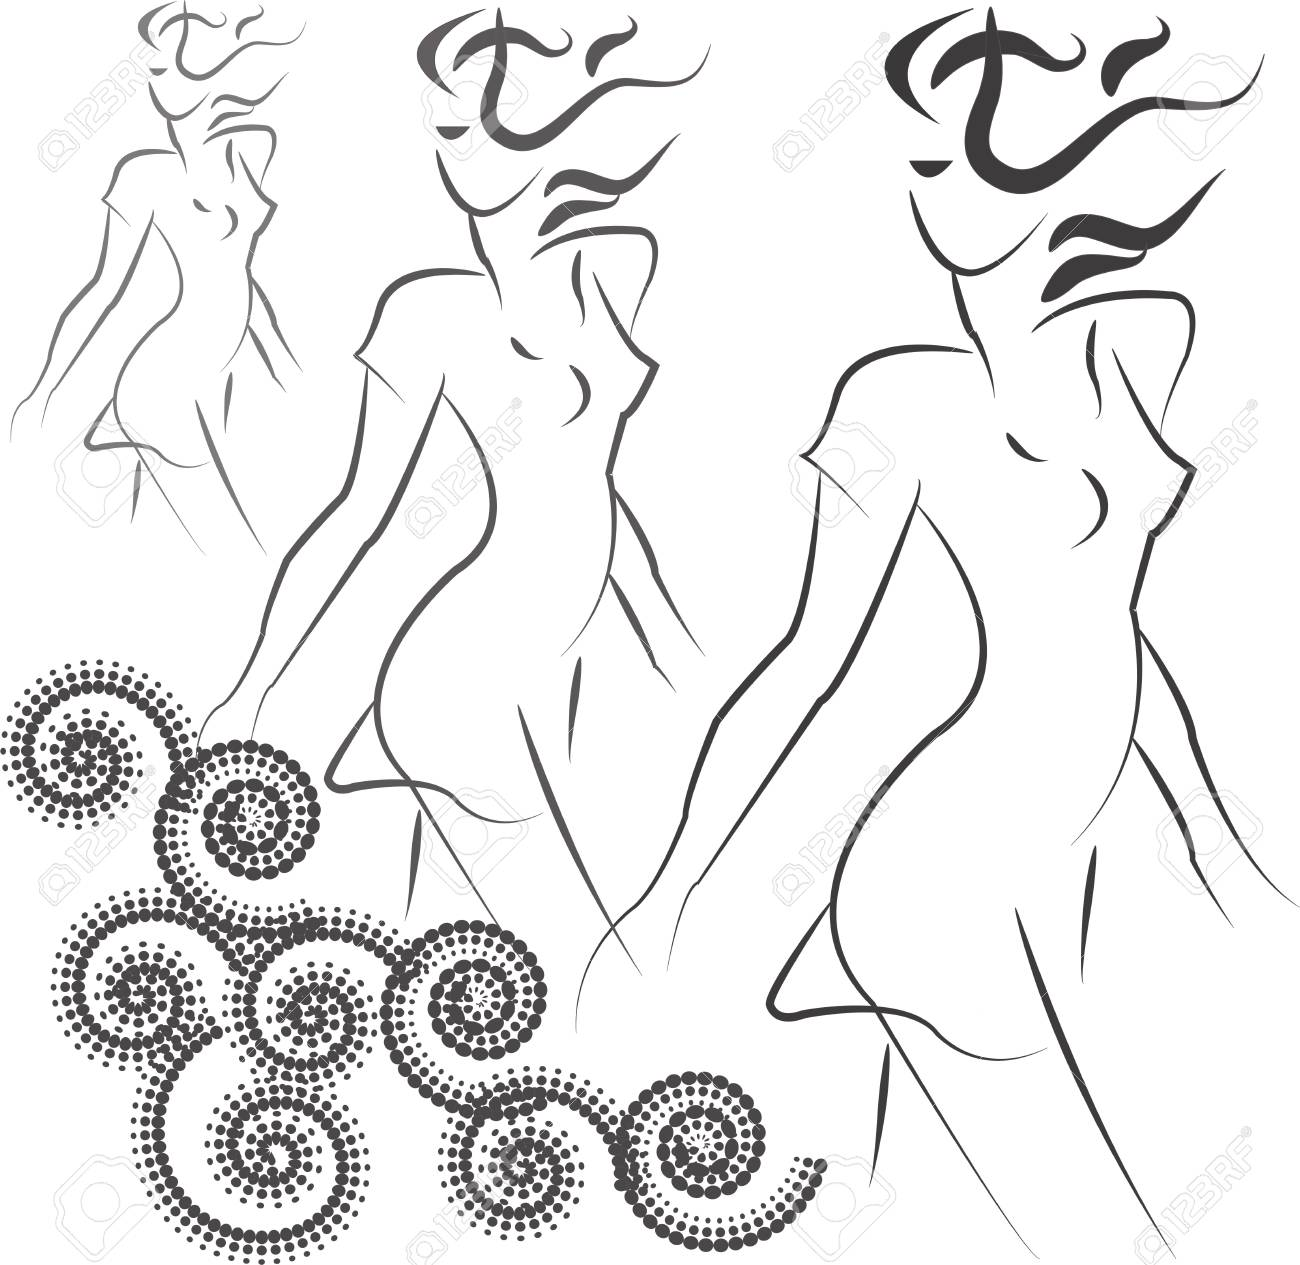 Outline of three girls on a white background with curls Stock Vector - 13270268